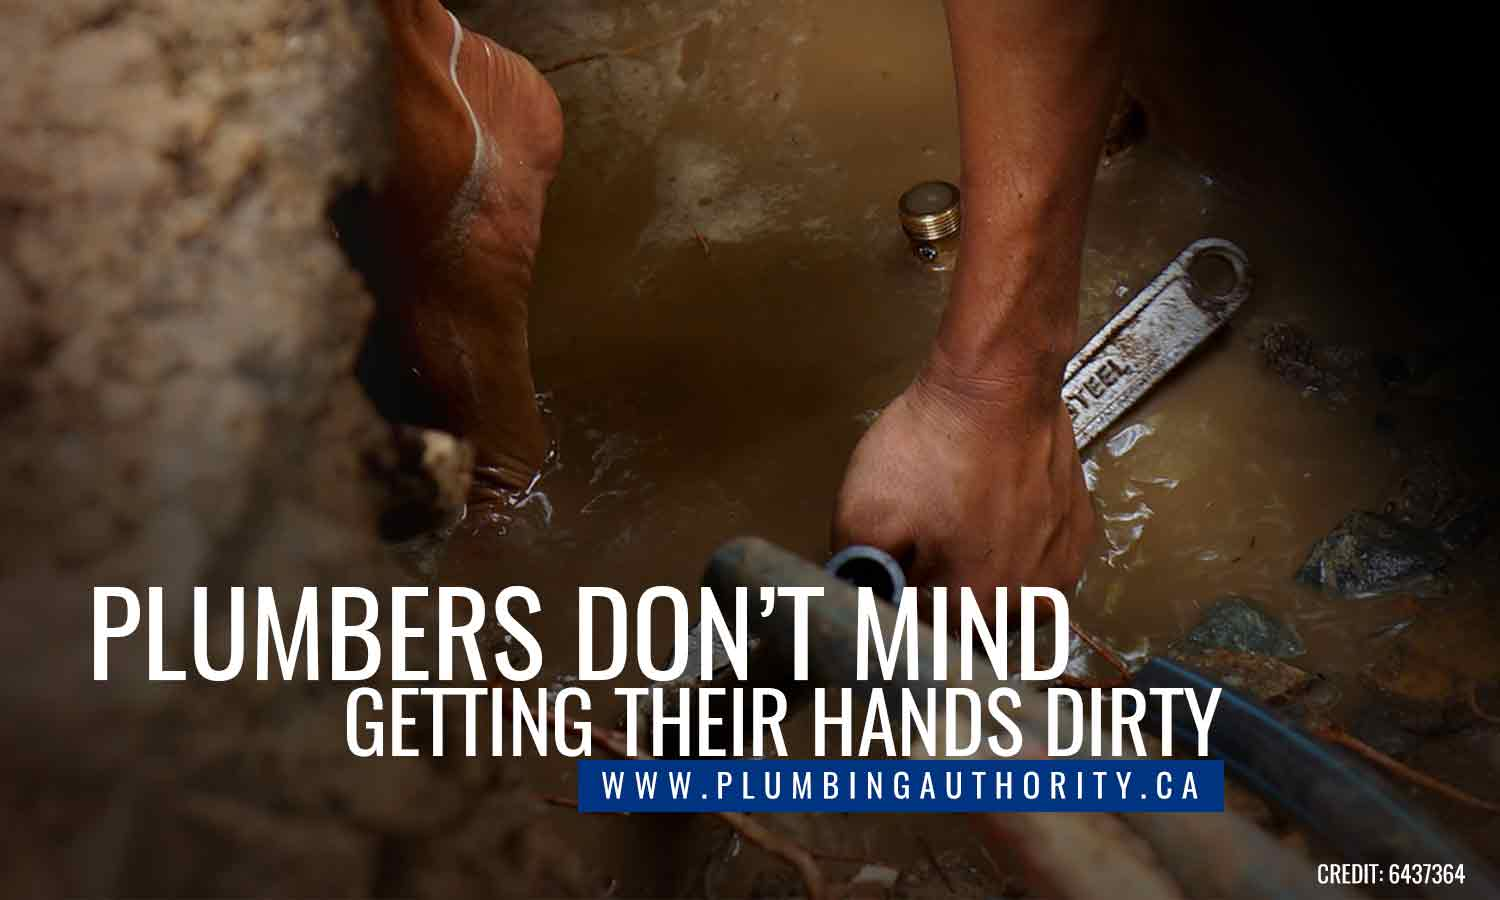 Plumbers don't mind getting their hands dirty